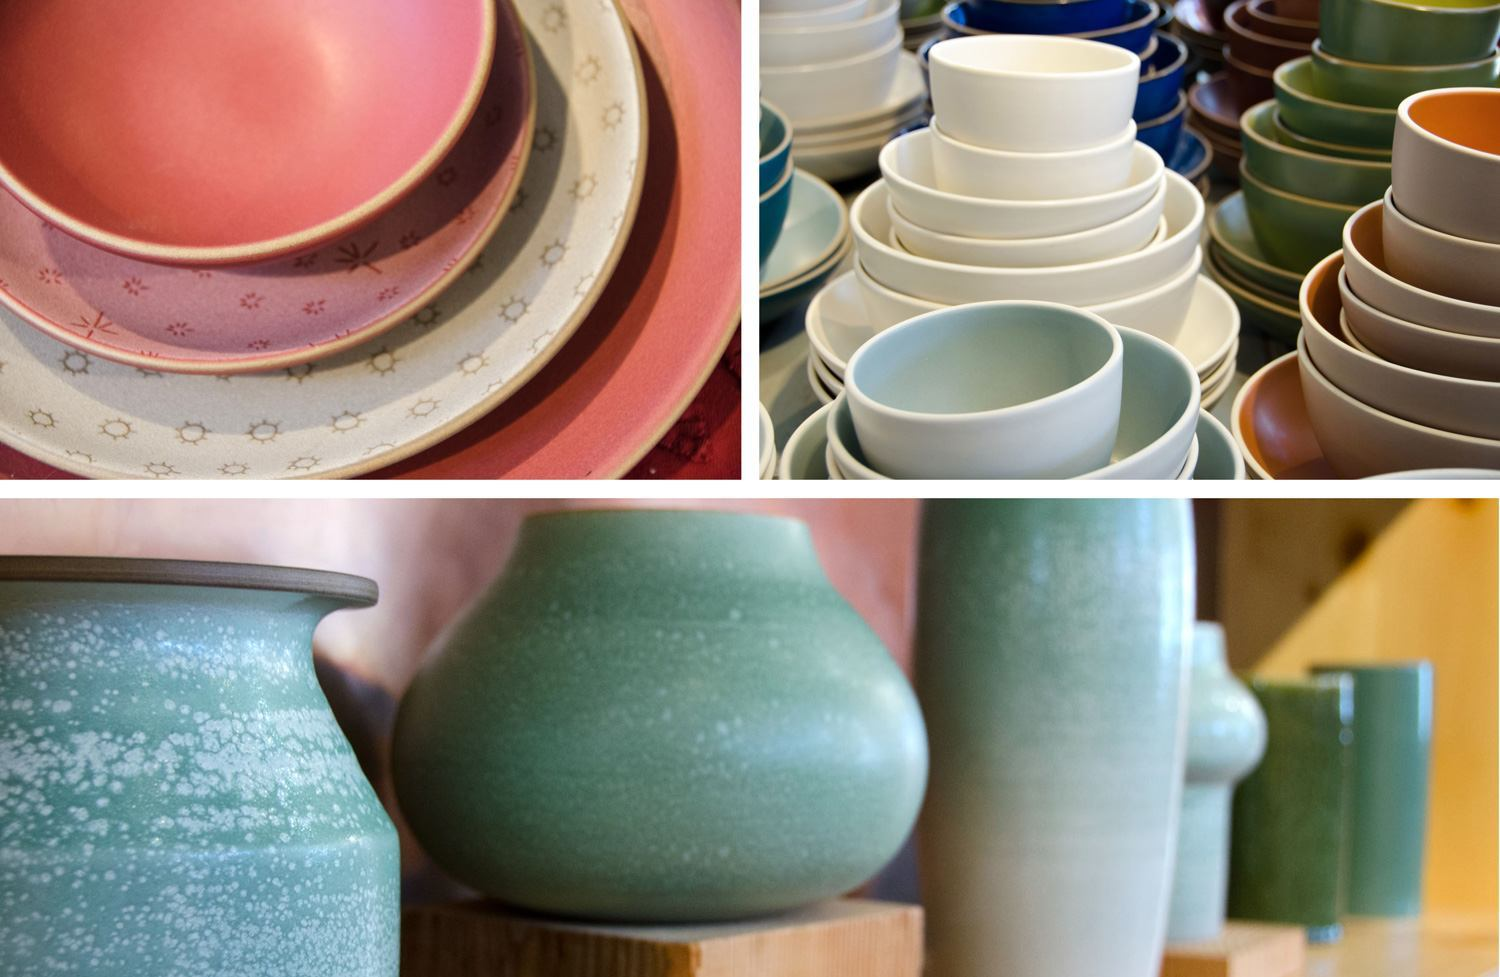 A couple of different collections — my personal favorite is the double layered glaze technique that make those textured vases you see in the bottom picture.